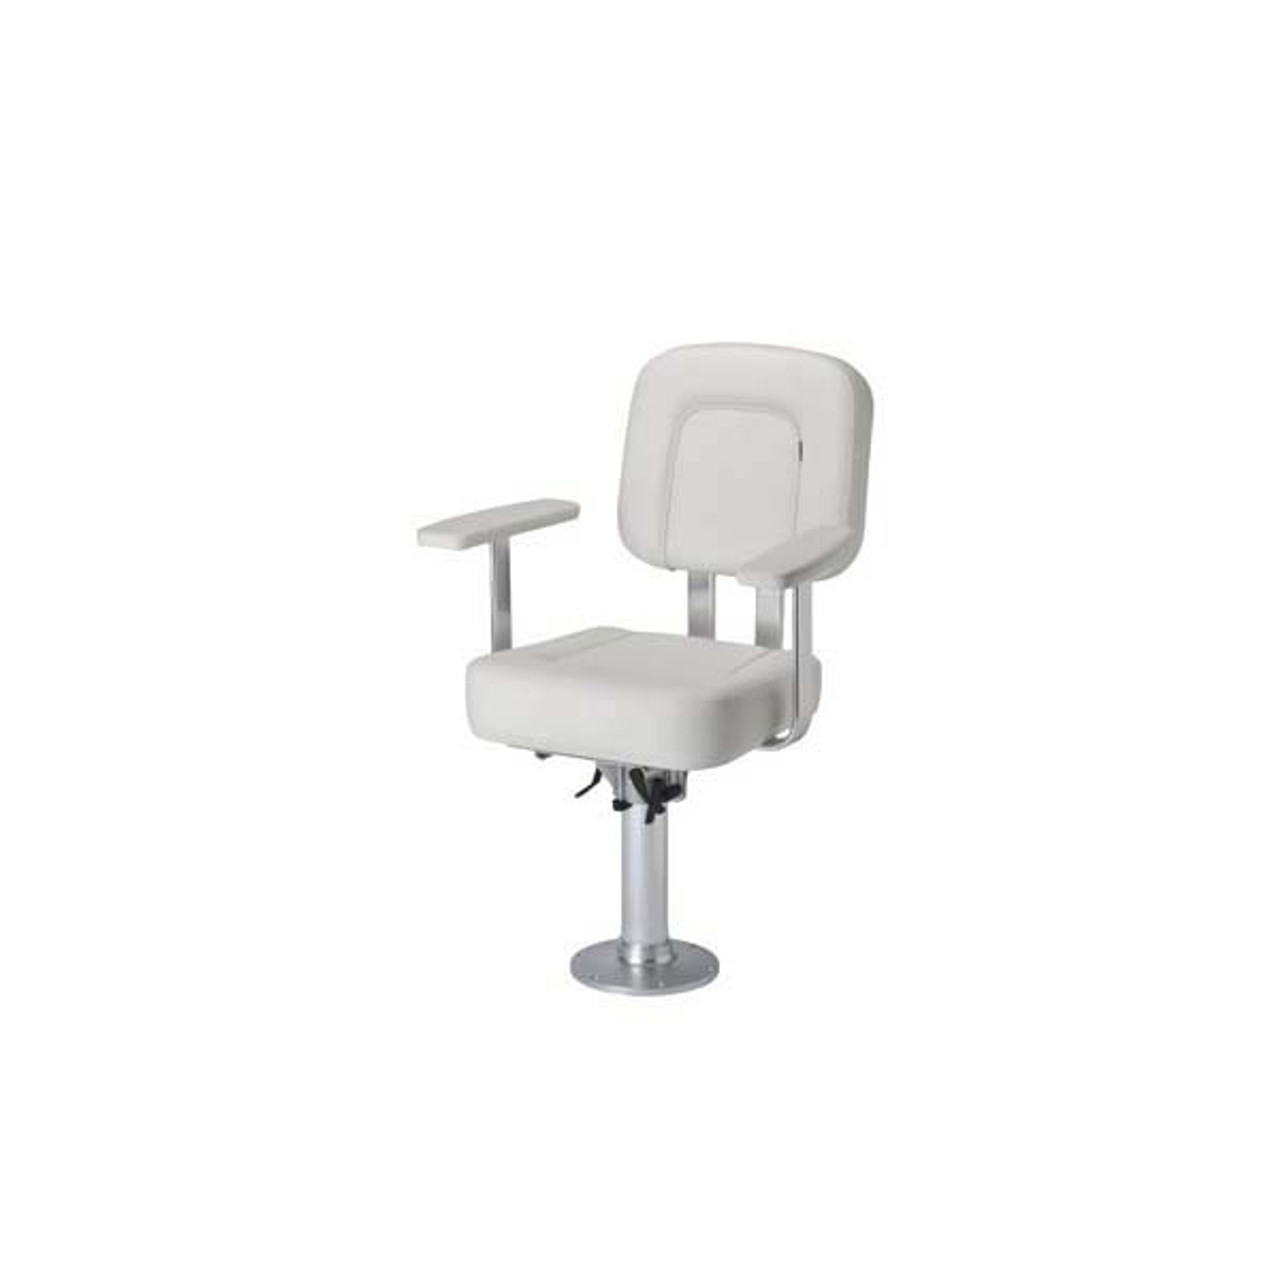 Garelick Offshore Vinyl Helm Chair Package